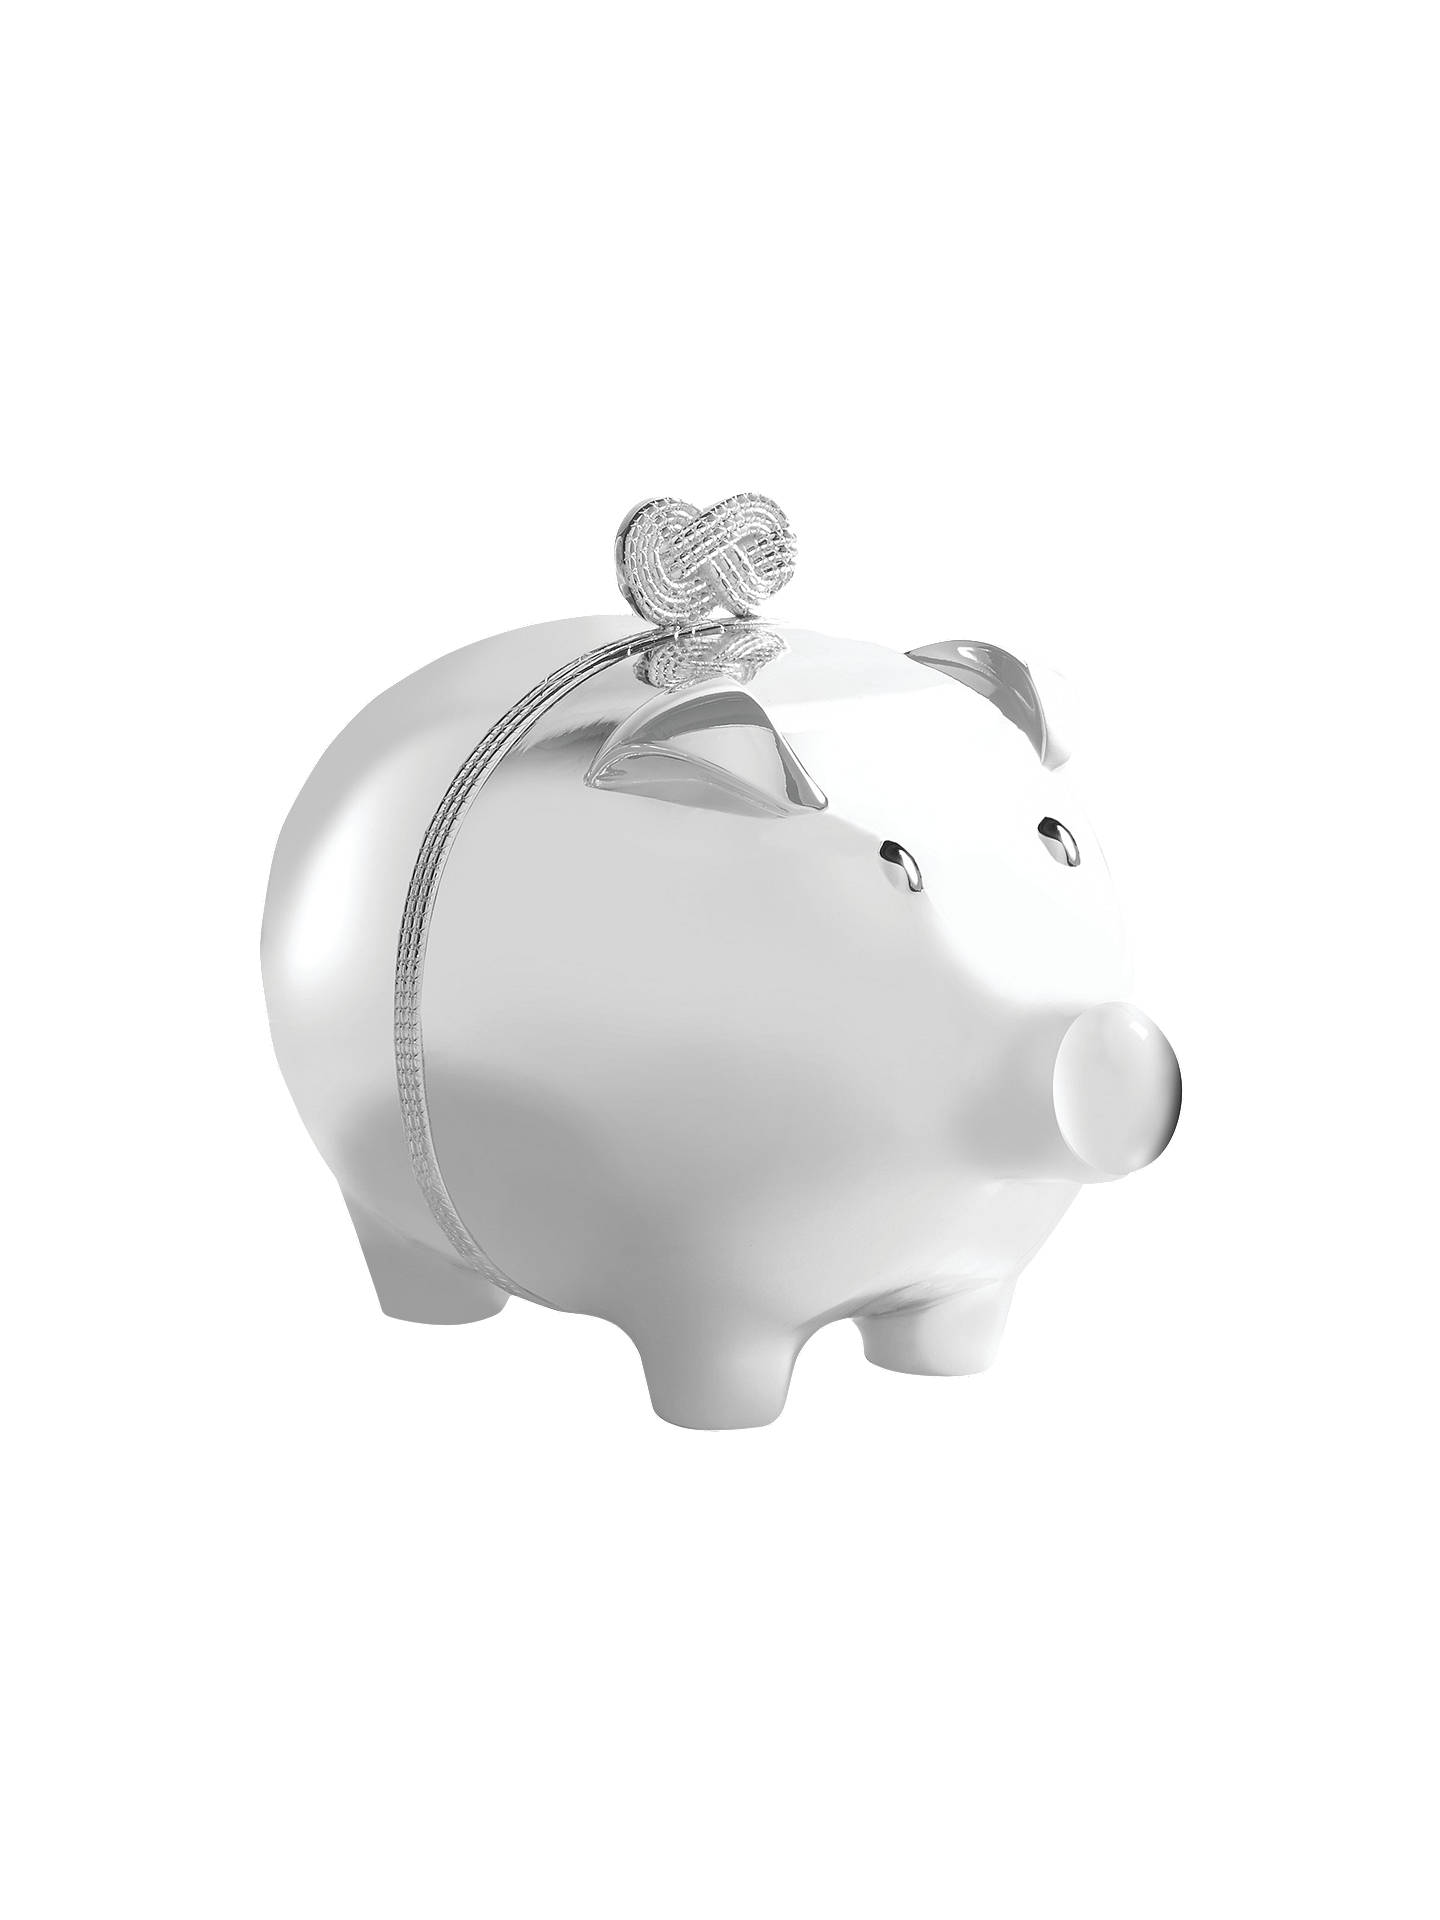 f7ff9f4ca153 Buy Vera Wang for Wedgwood Infinity Piggy Bank Online at johnlewis.com ...